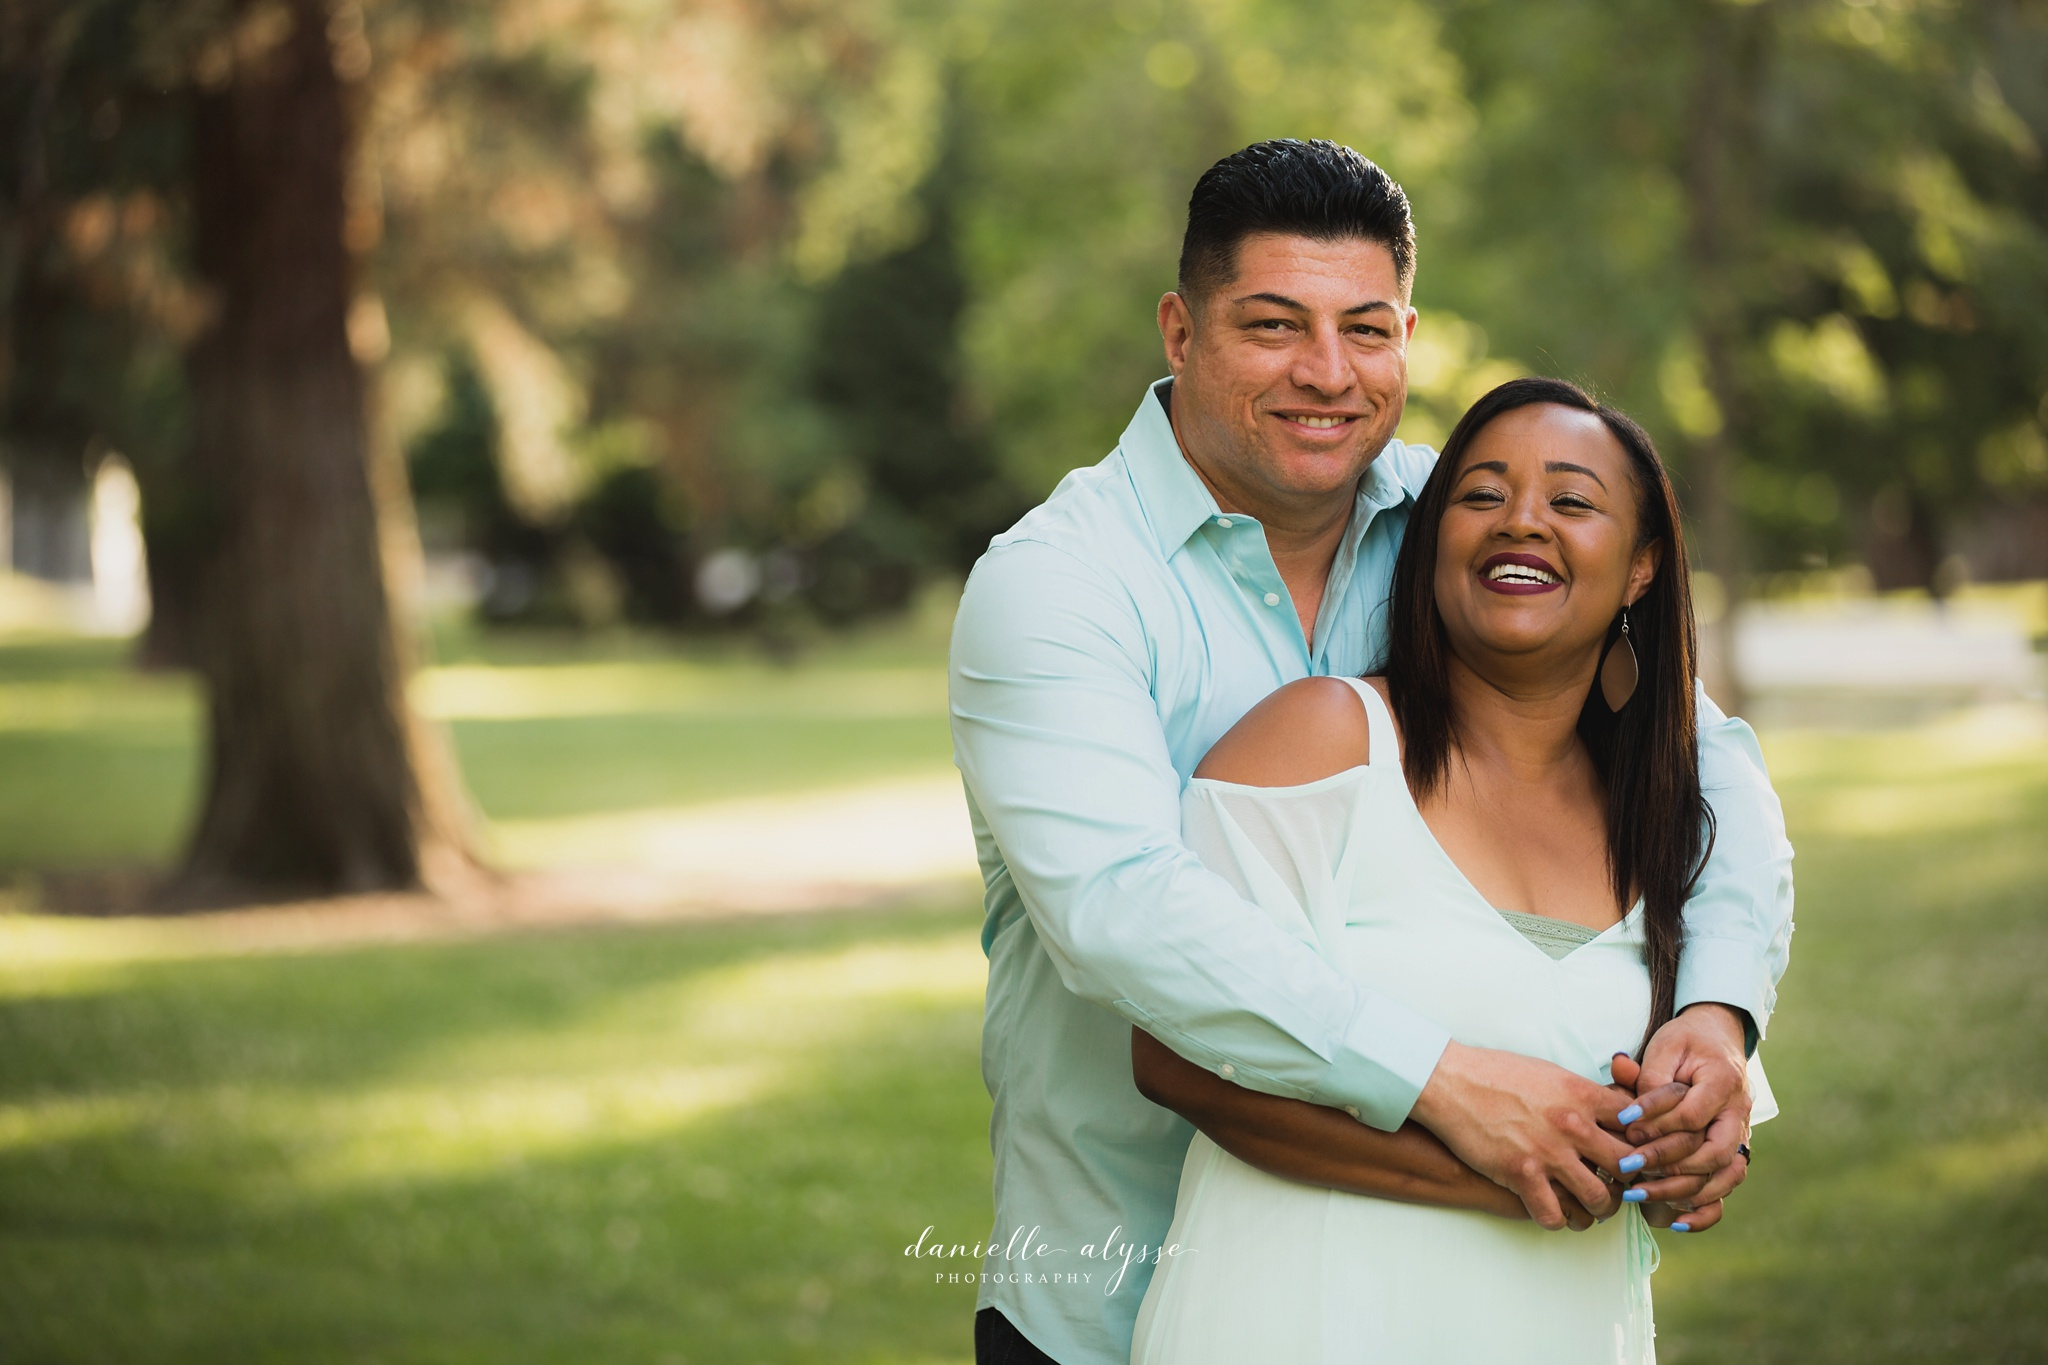 180604_family_portrait_eresvey_state_capitol_park_california_danielle_alysse_photography_blog_37_WEB.jpg